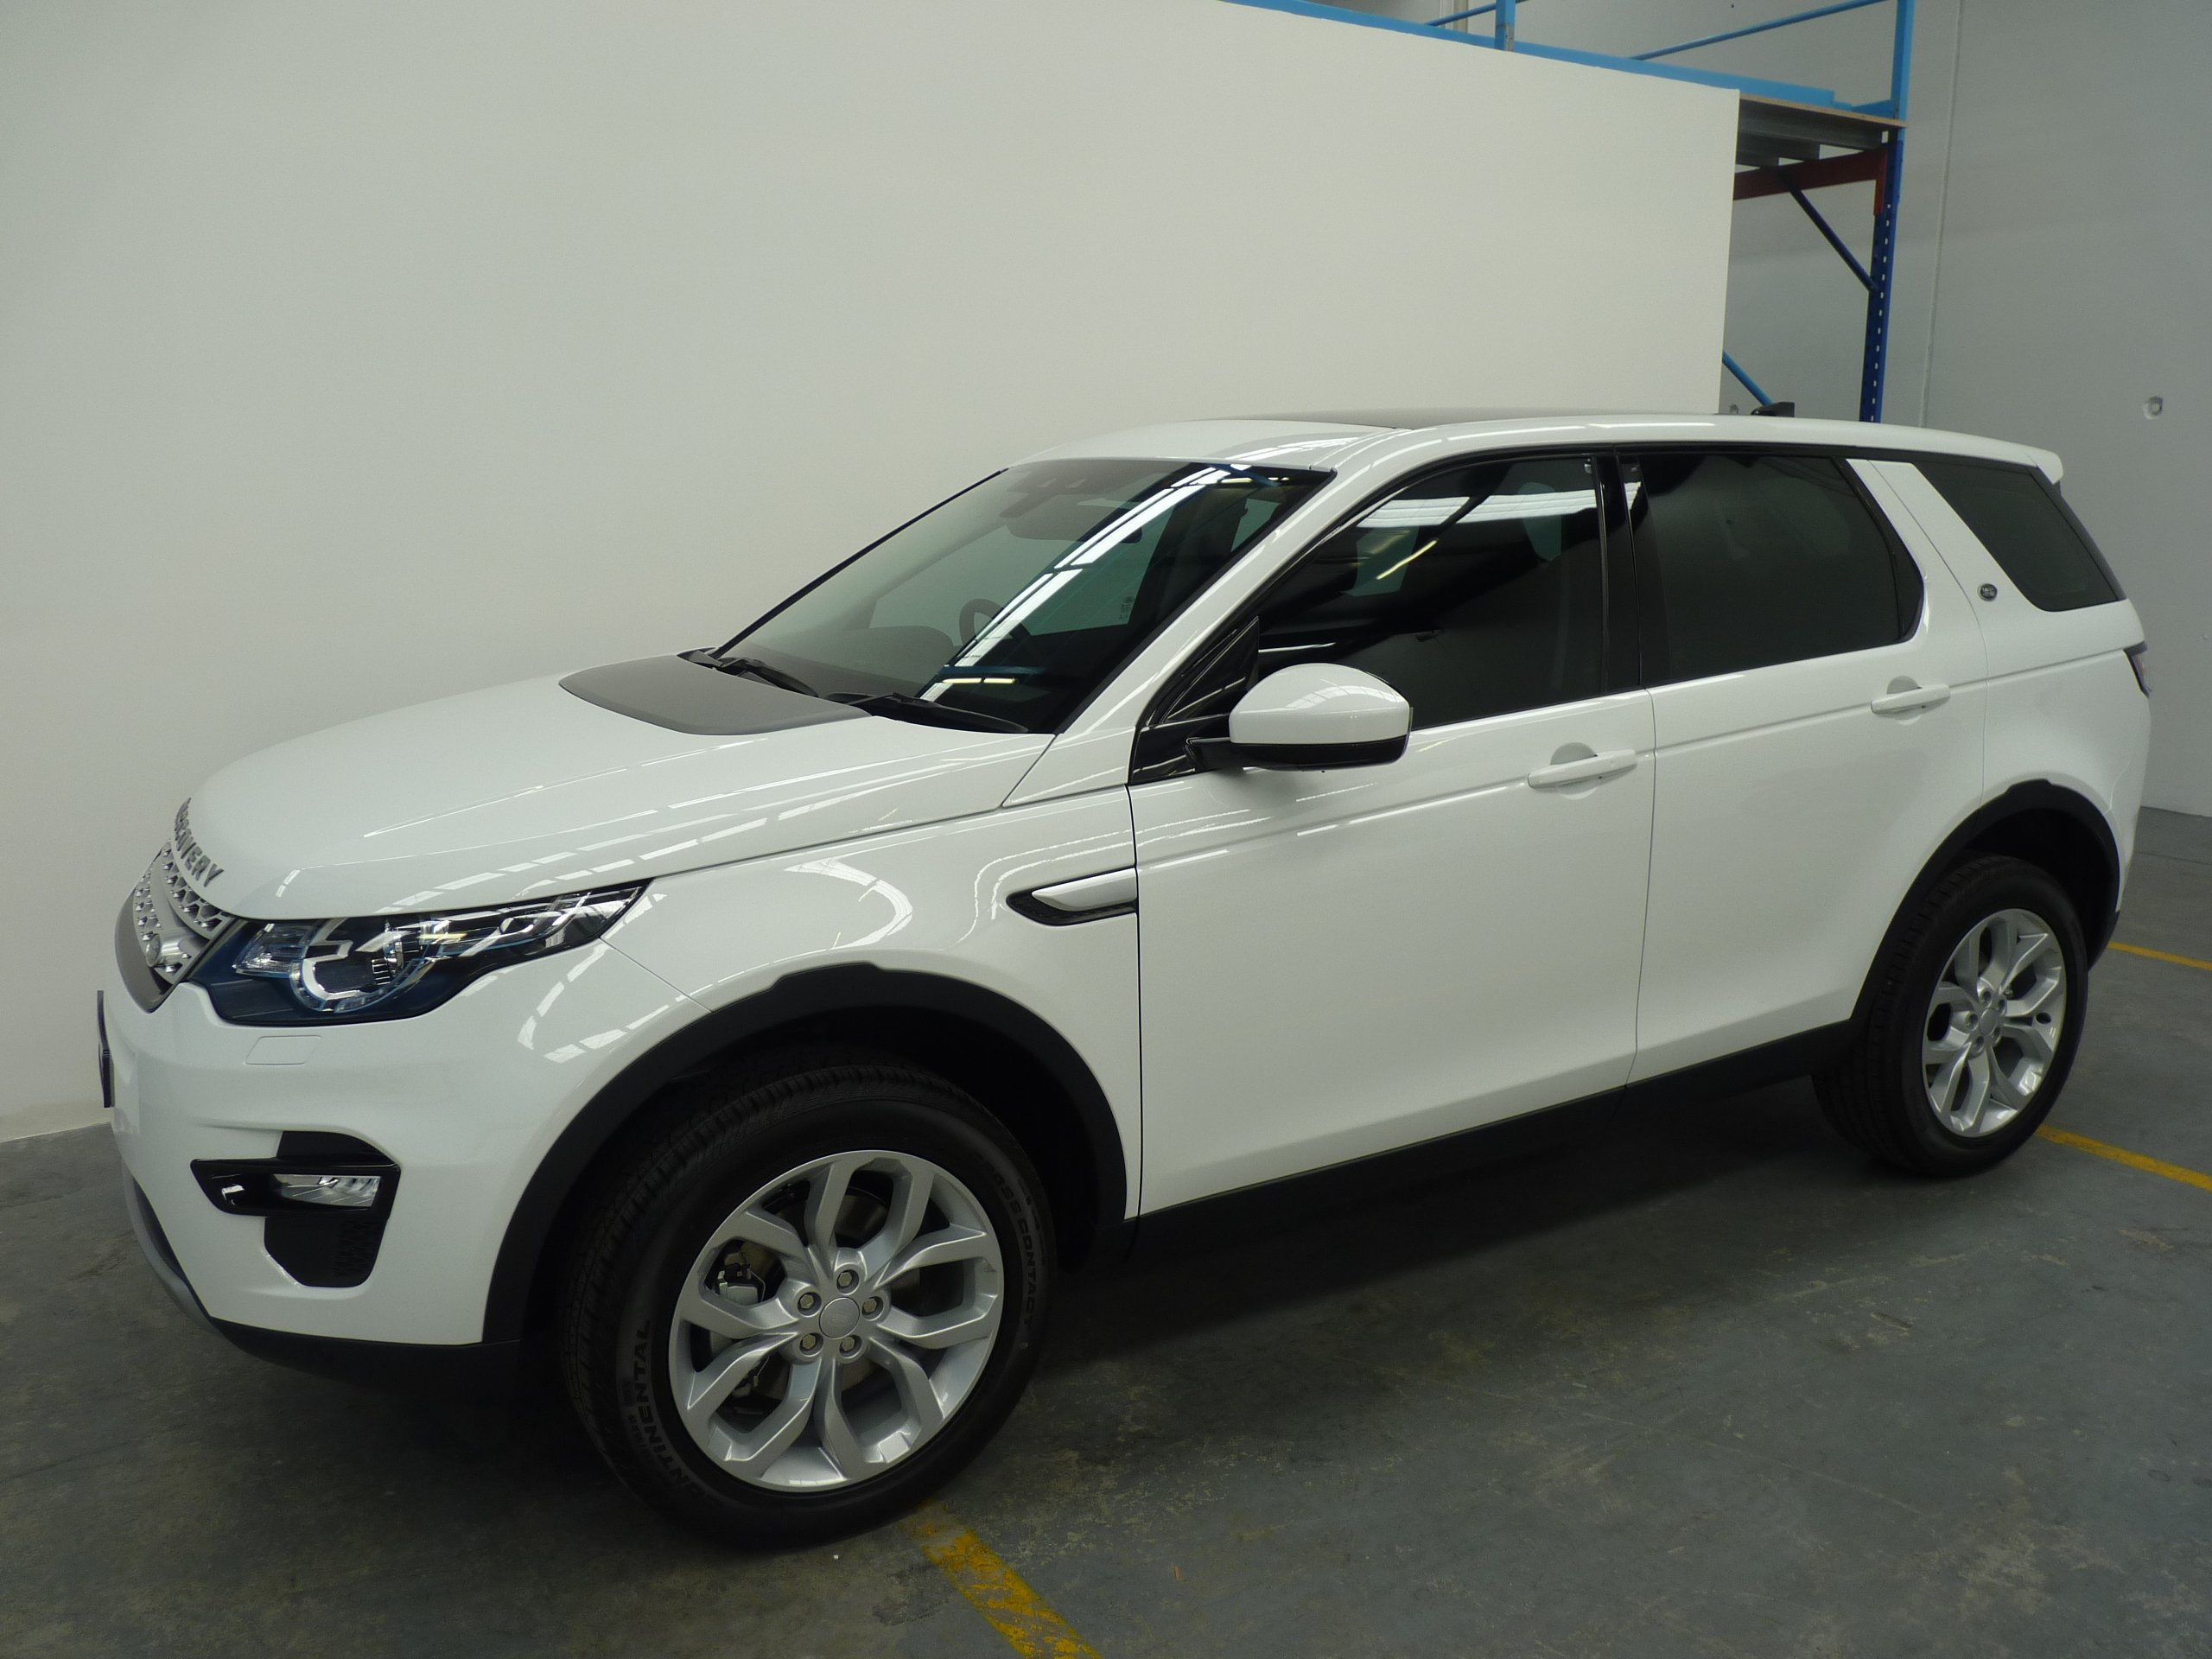 Range Rover winguard Adelaide PPF XPEL